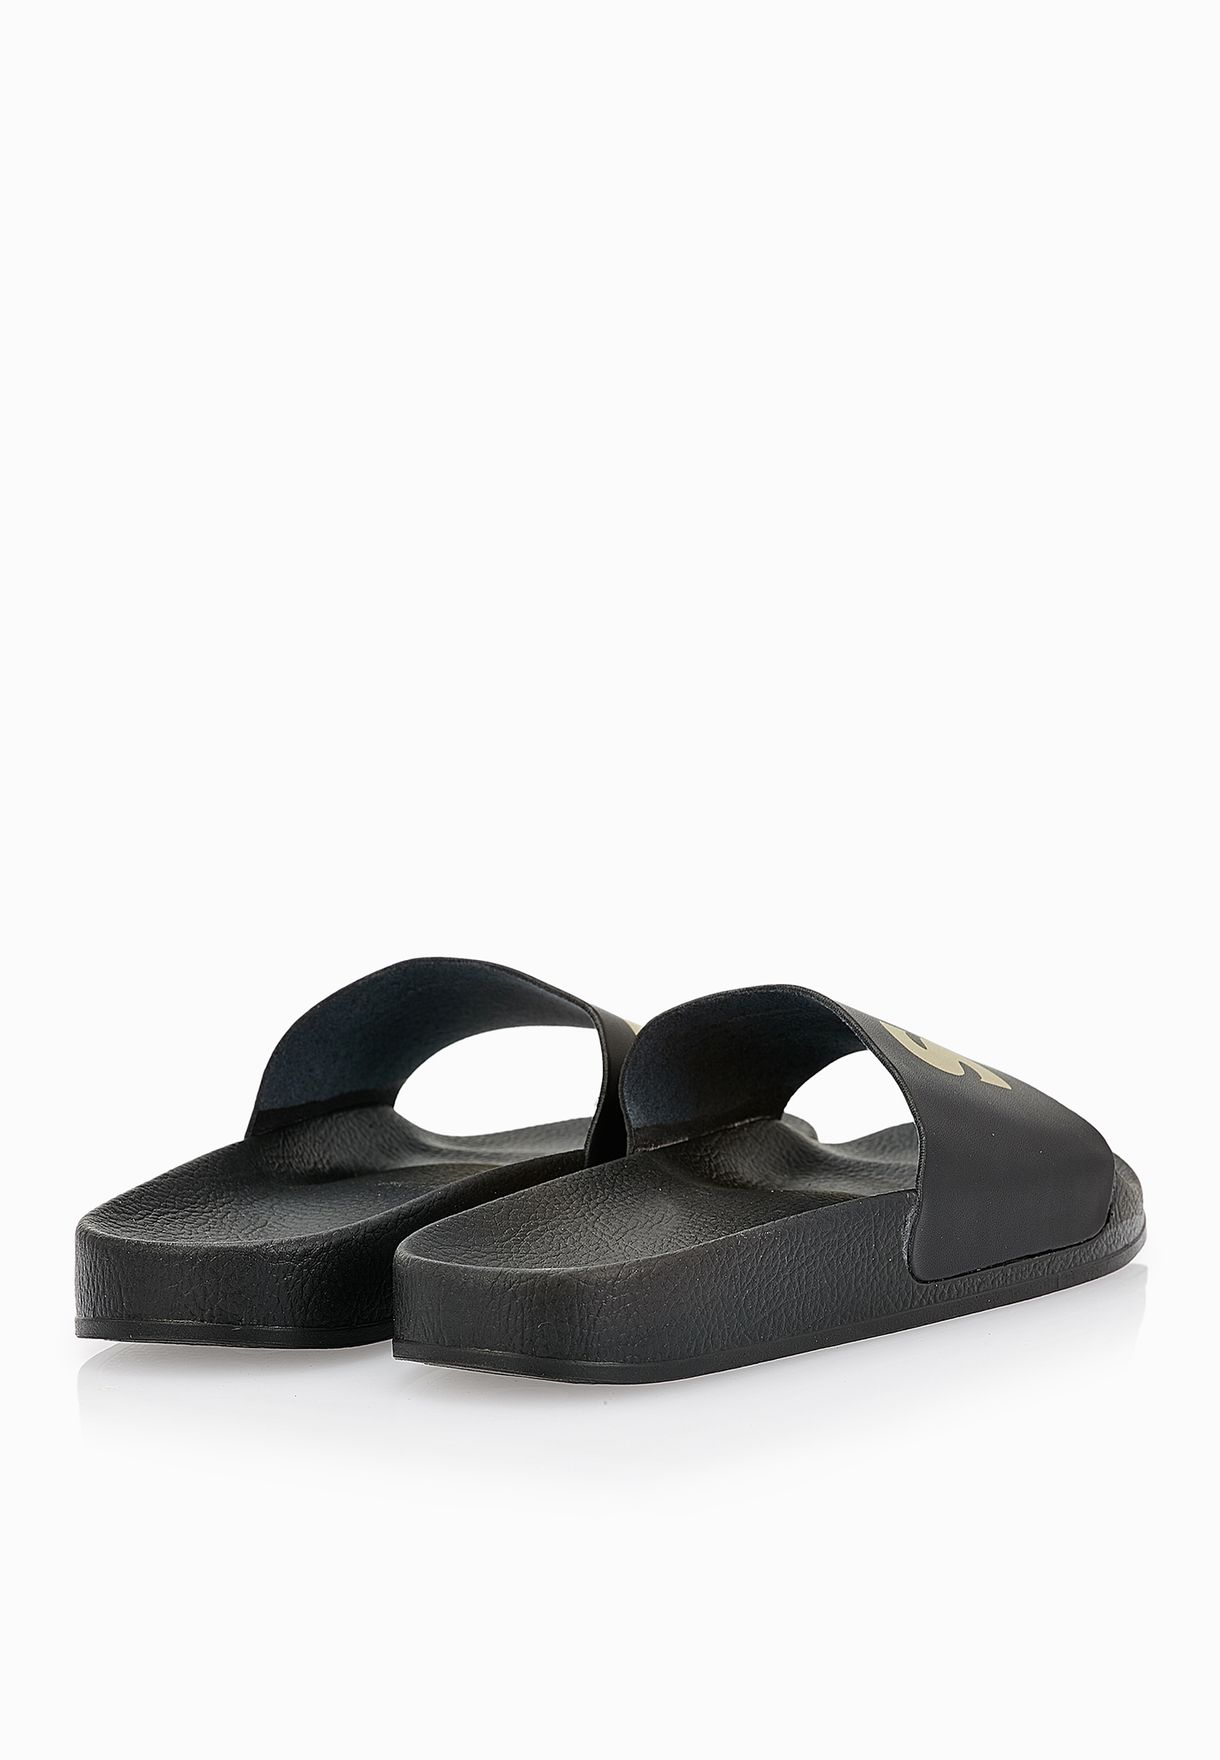 Haven Pool Slide Sandals